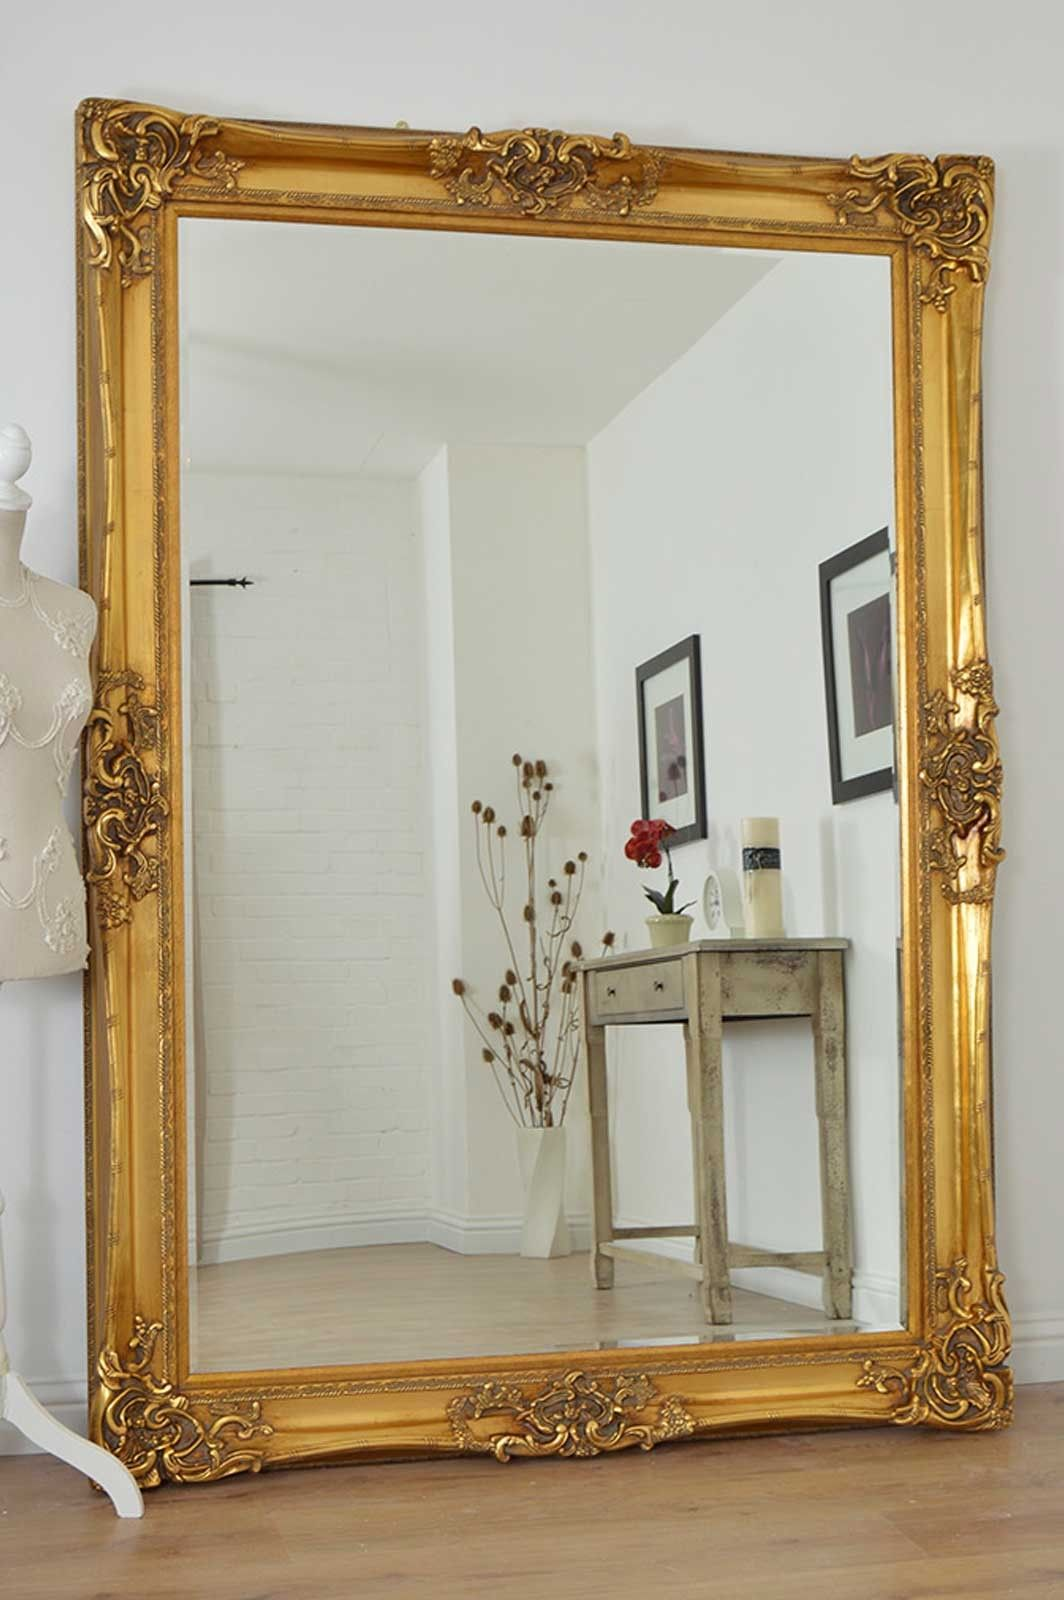 Large gold very ornate antique design wall mirror 7ft x for Where to find mirrors